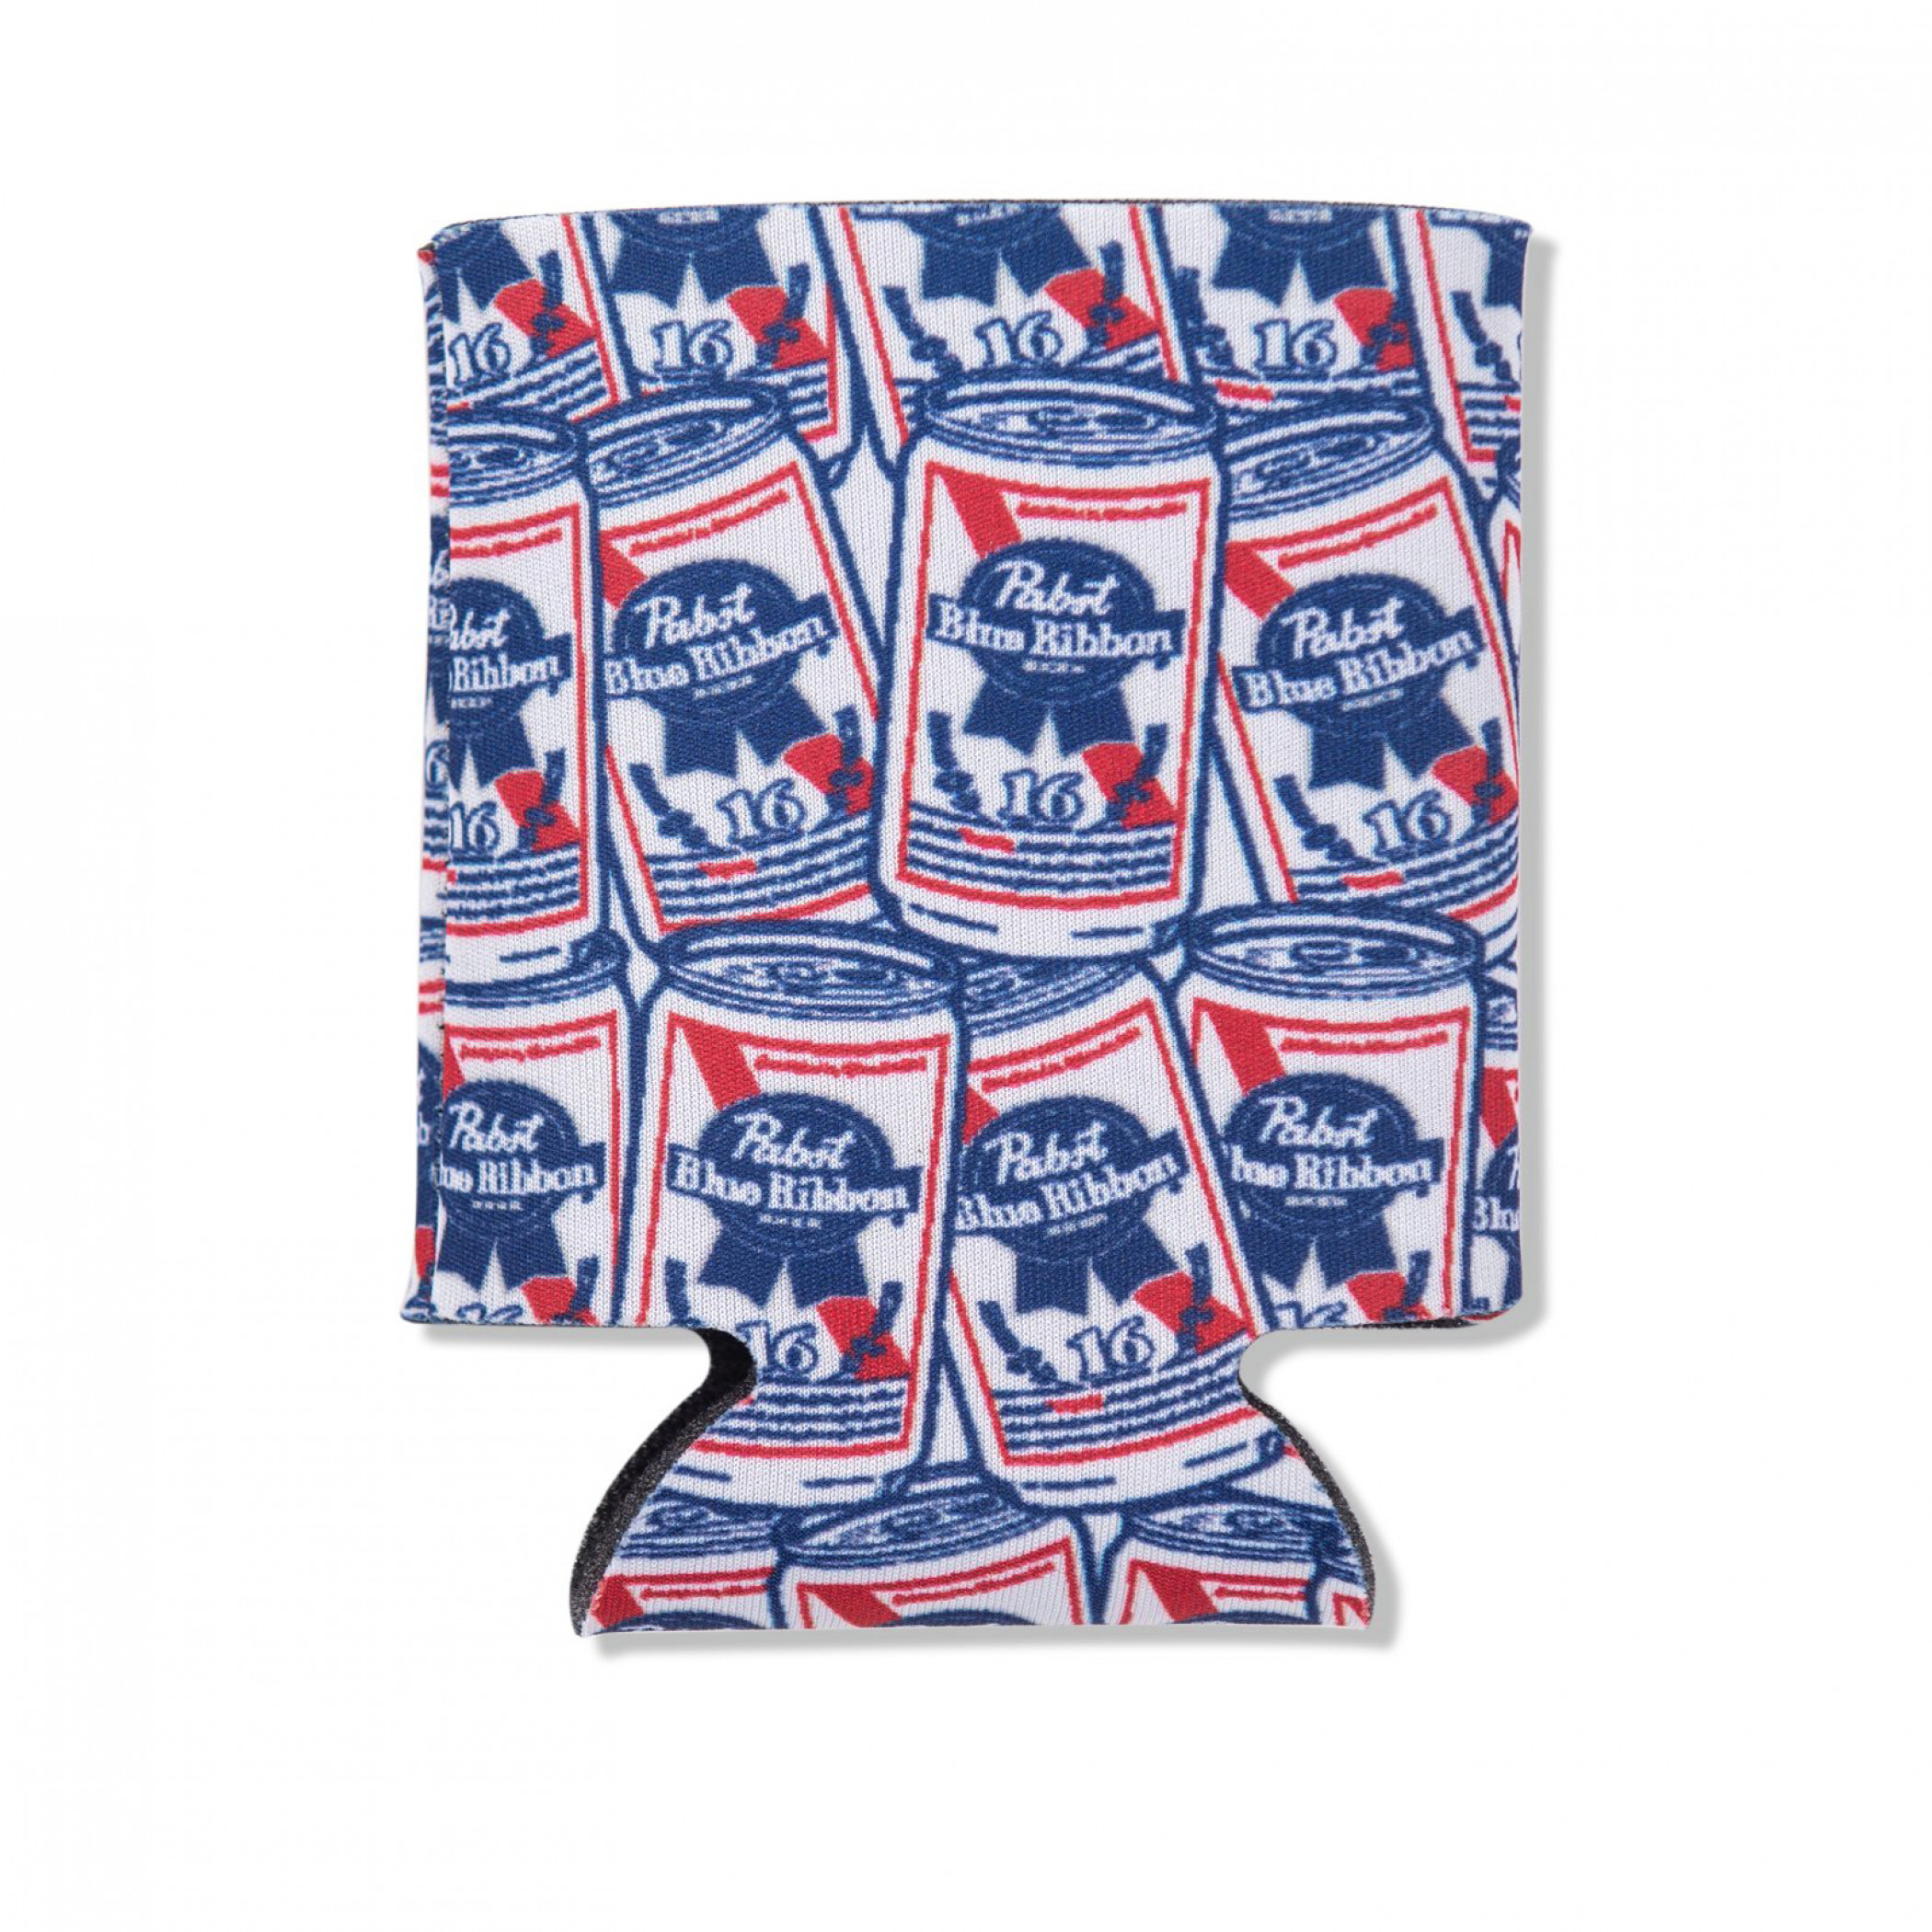 Pabst Blue Ribbon Beer All Over Cans Can Cooler